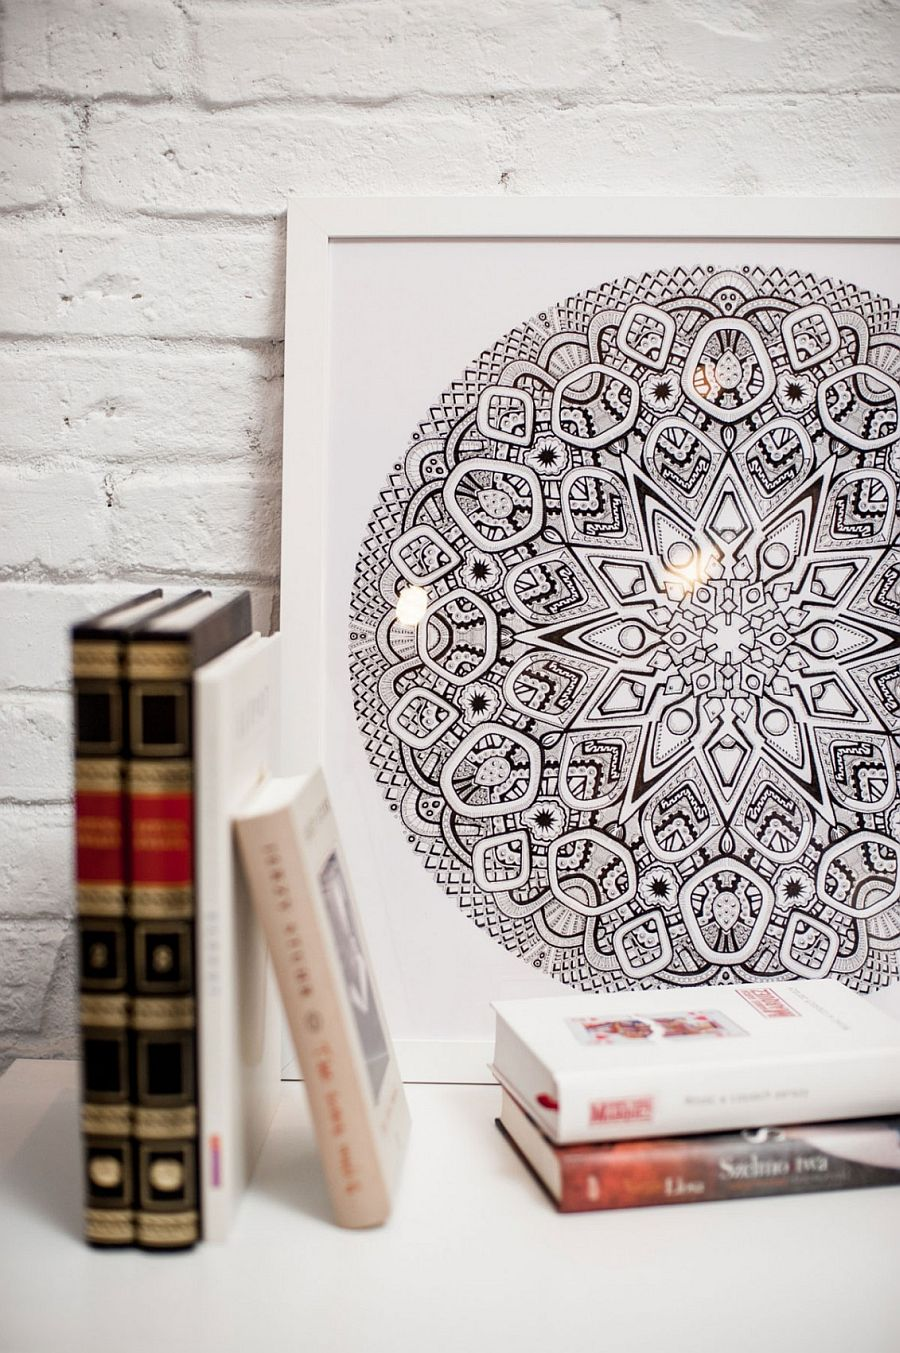 Use of Mandalas to create interesting pattern to the living space